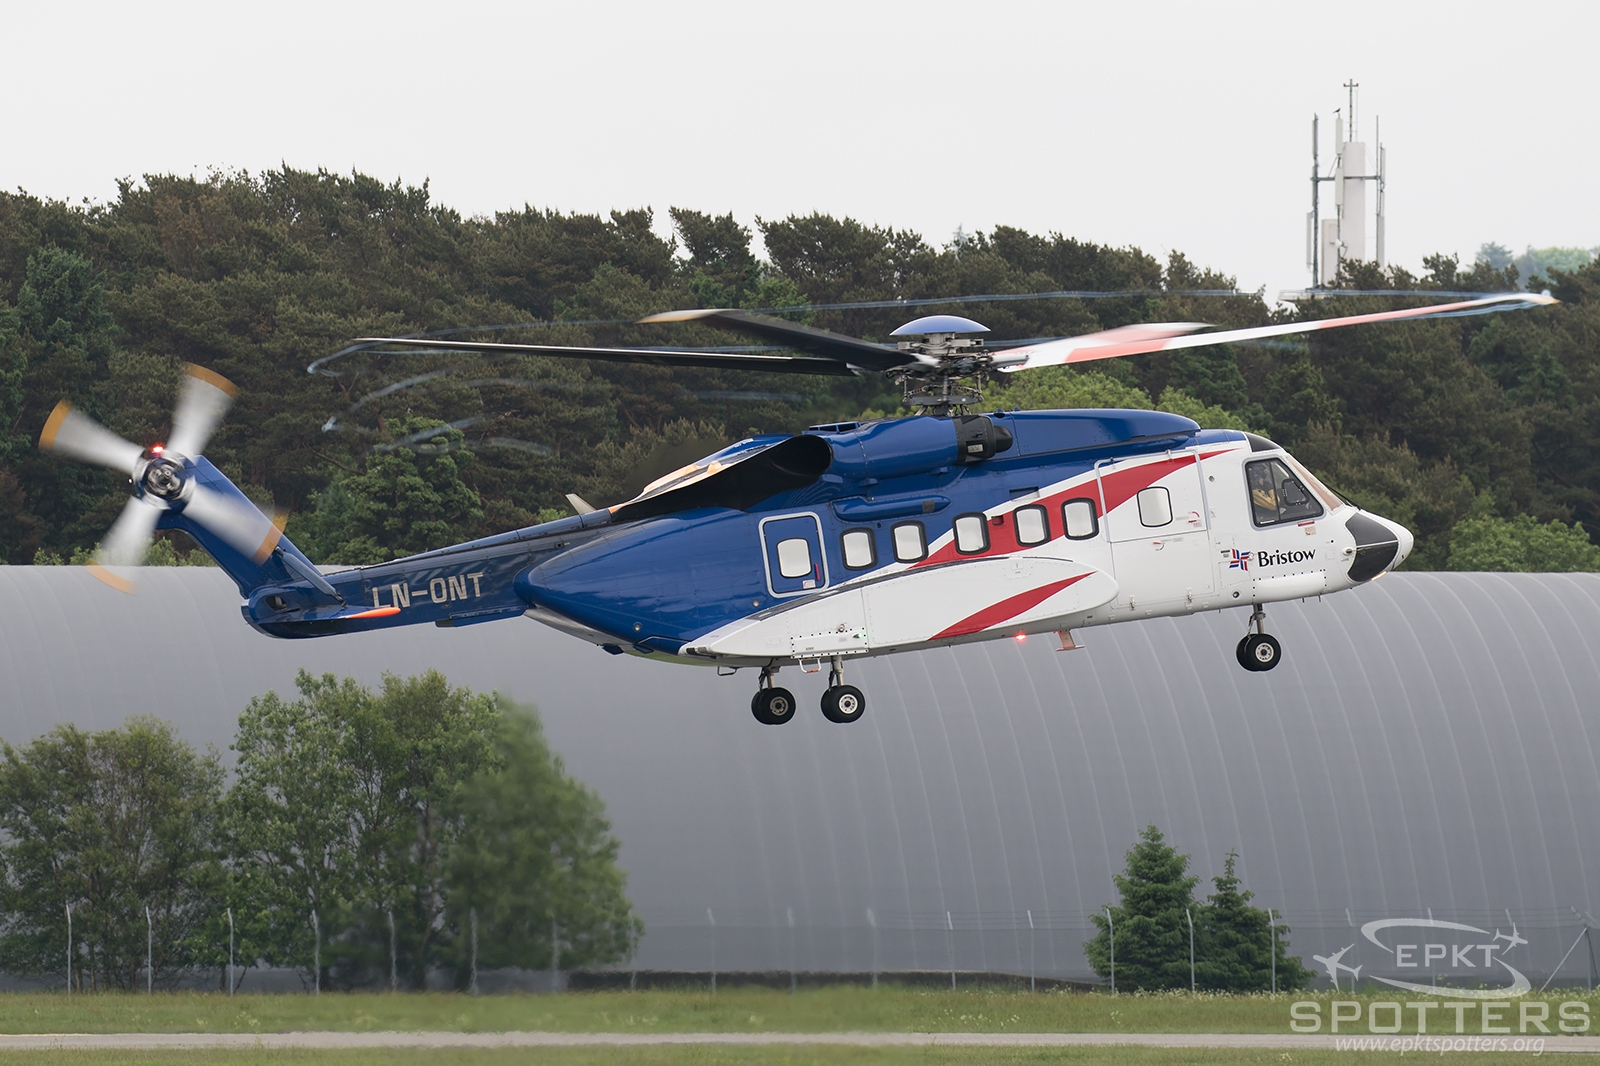 LN-ONT - Sikorsky S-92 A Helibus (Bristow Helicopters) / Sola - Stavanger Norway [ENZV/SVG ]